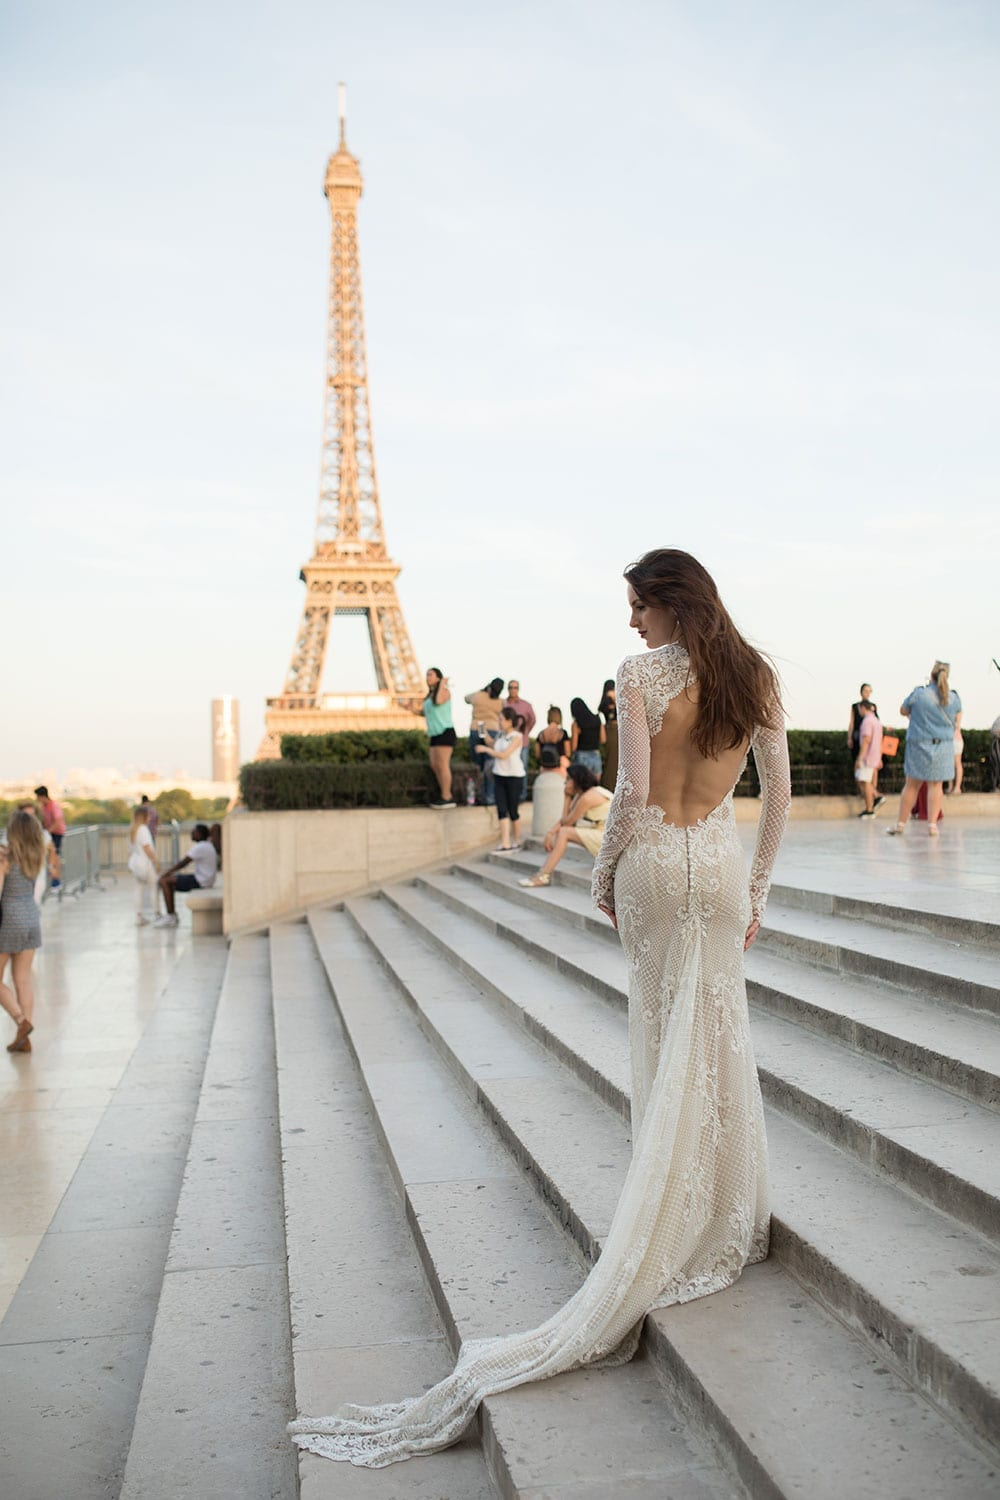 Model wearing Vinka Design Hayley Wedding Dress, a Backless Long Sleeve Lace Wedding Gown on the marble steps in Paris with the Eiffel Tower in the background